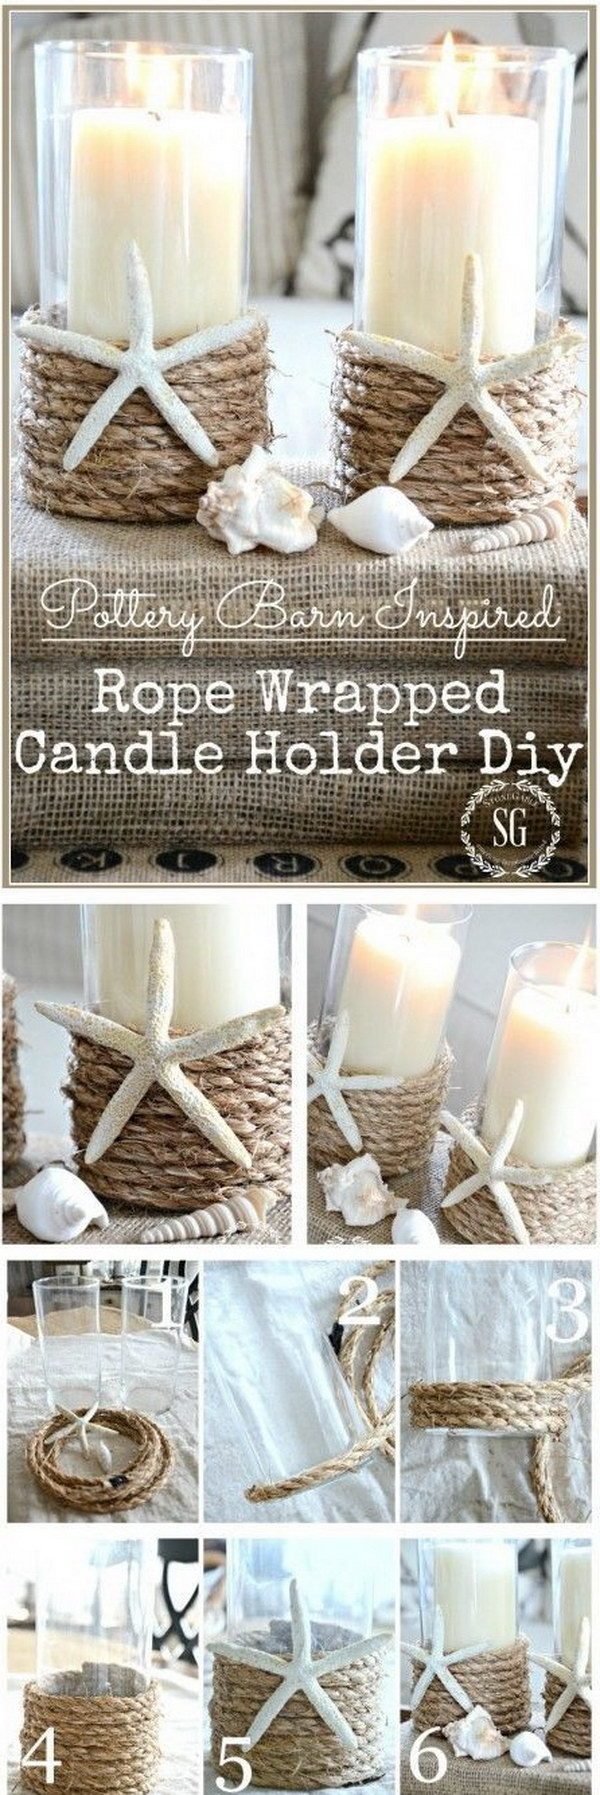 DIY Rope Wrapped Candle Holder